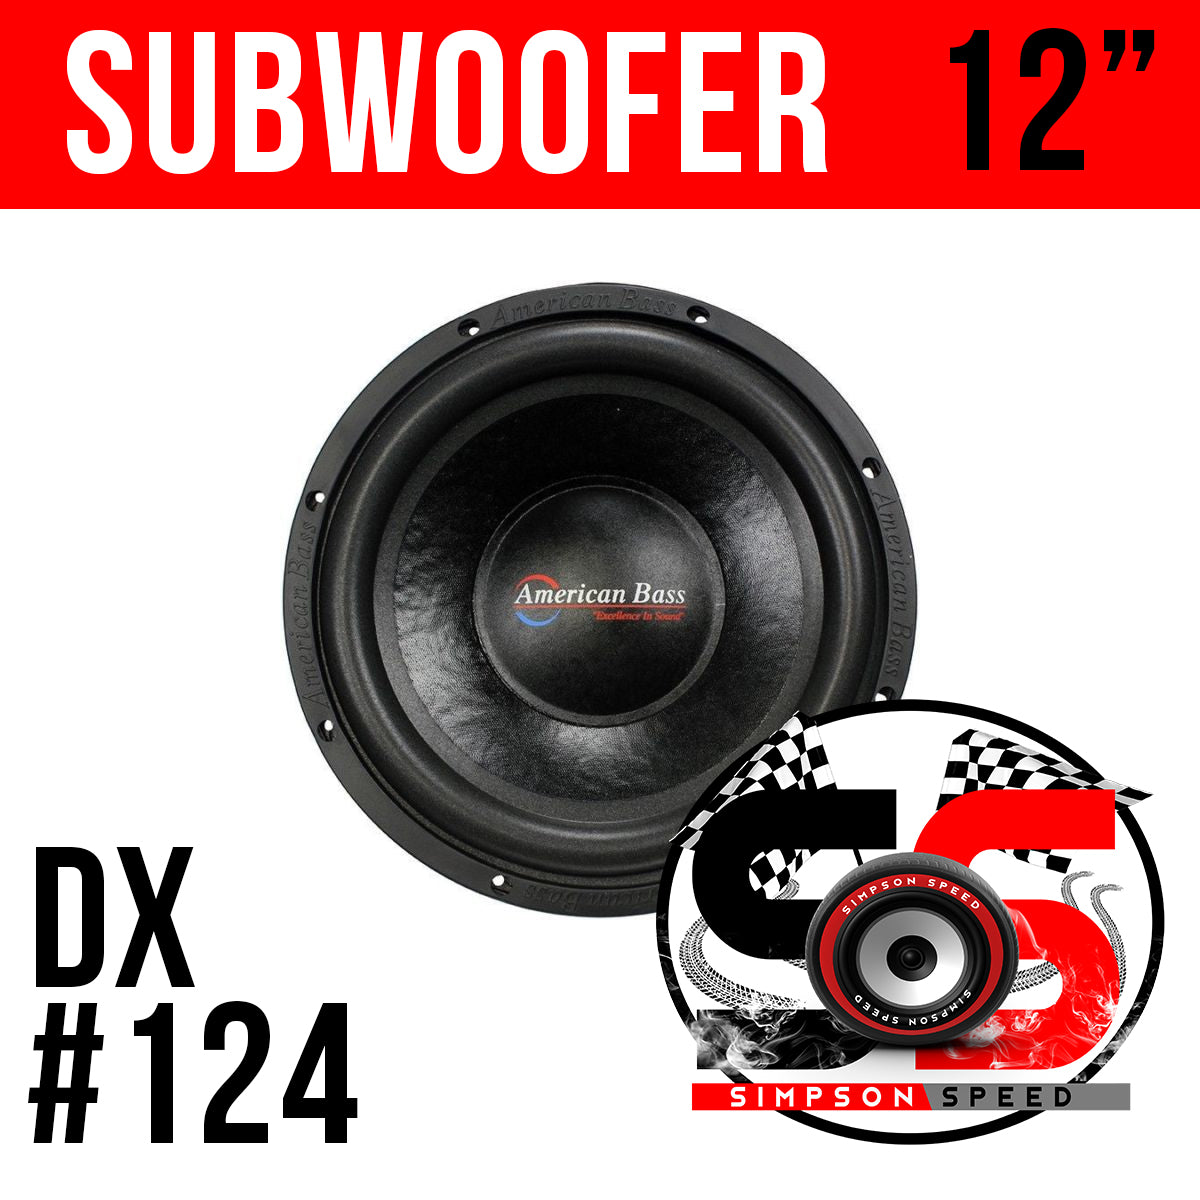 DX 12 American Bass Subwoofer